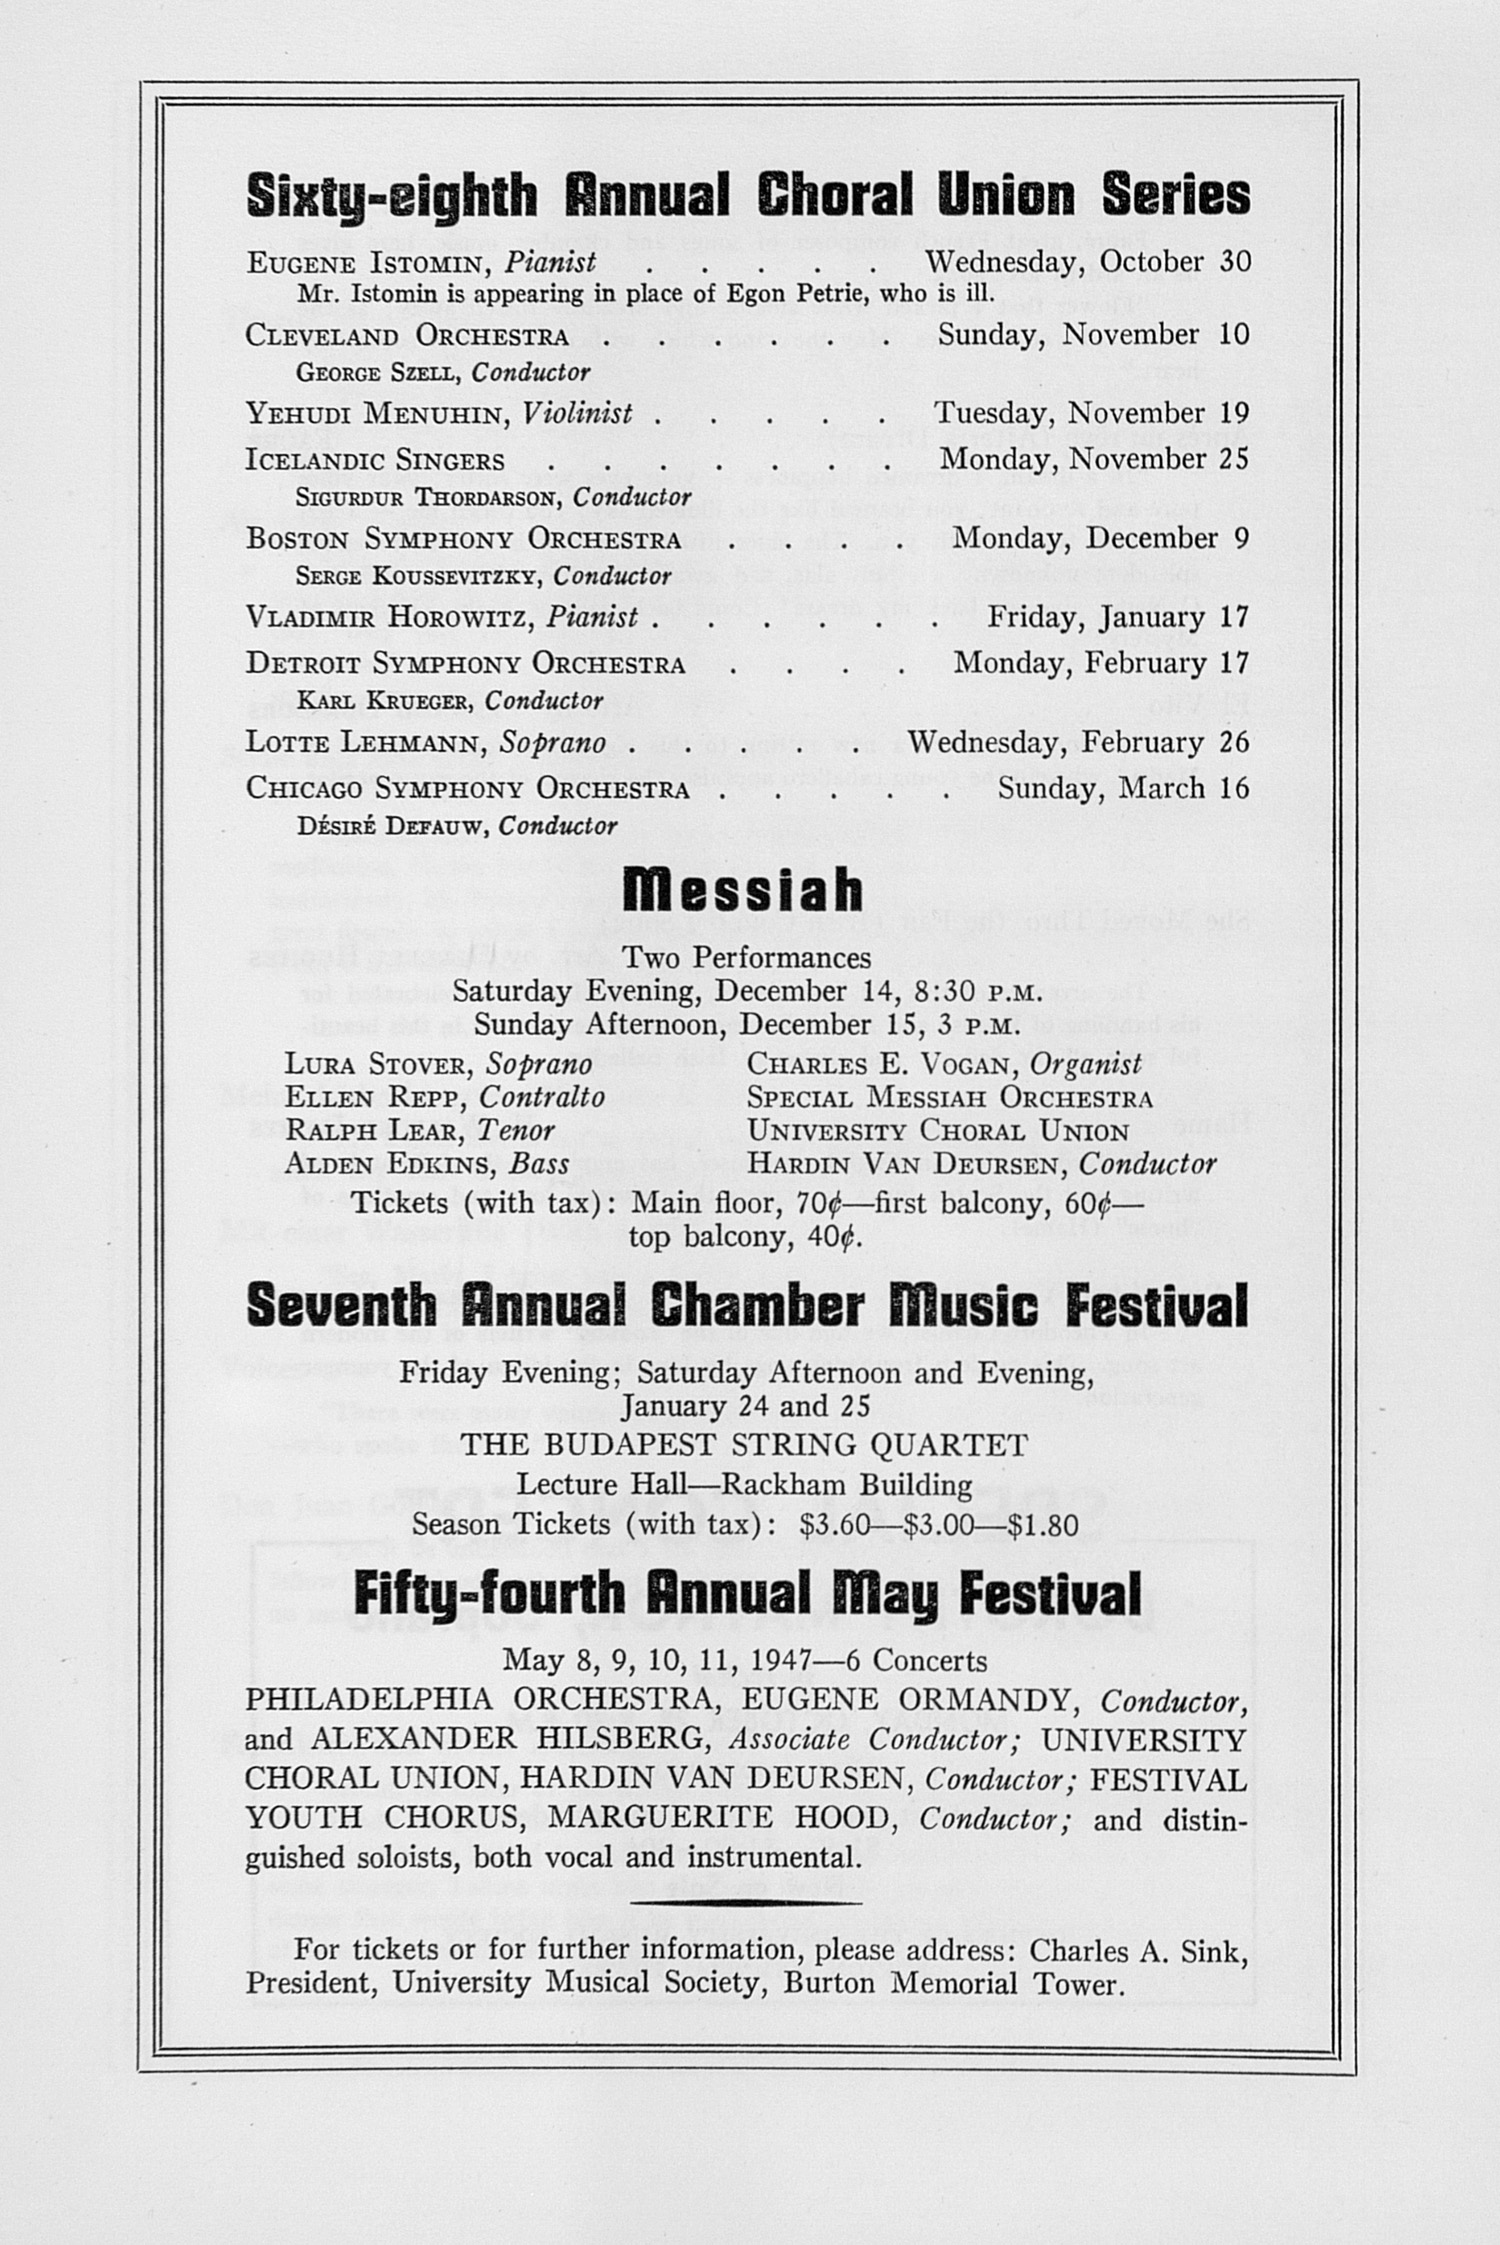 UMS Concert Program, October 10, 1946: Sixty-eighth Annual Choral Union Concert Series -- James Melton image